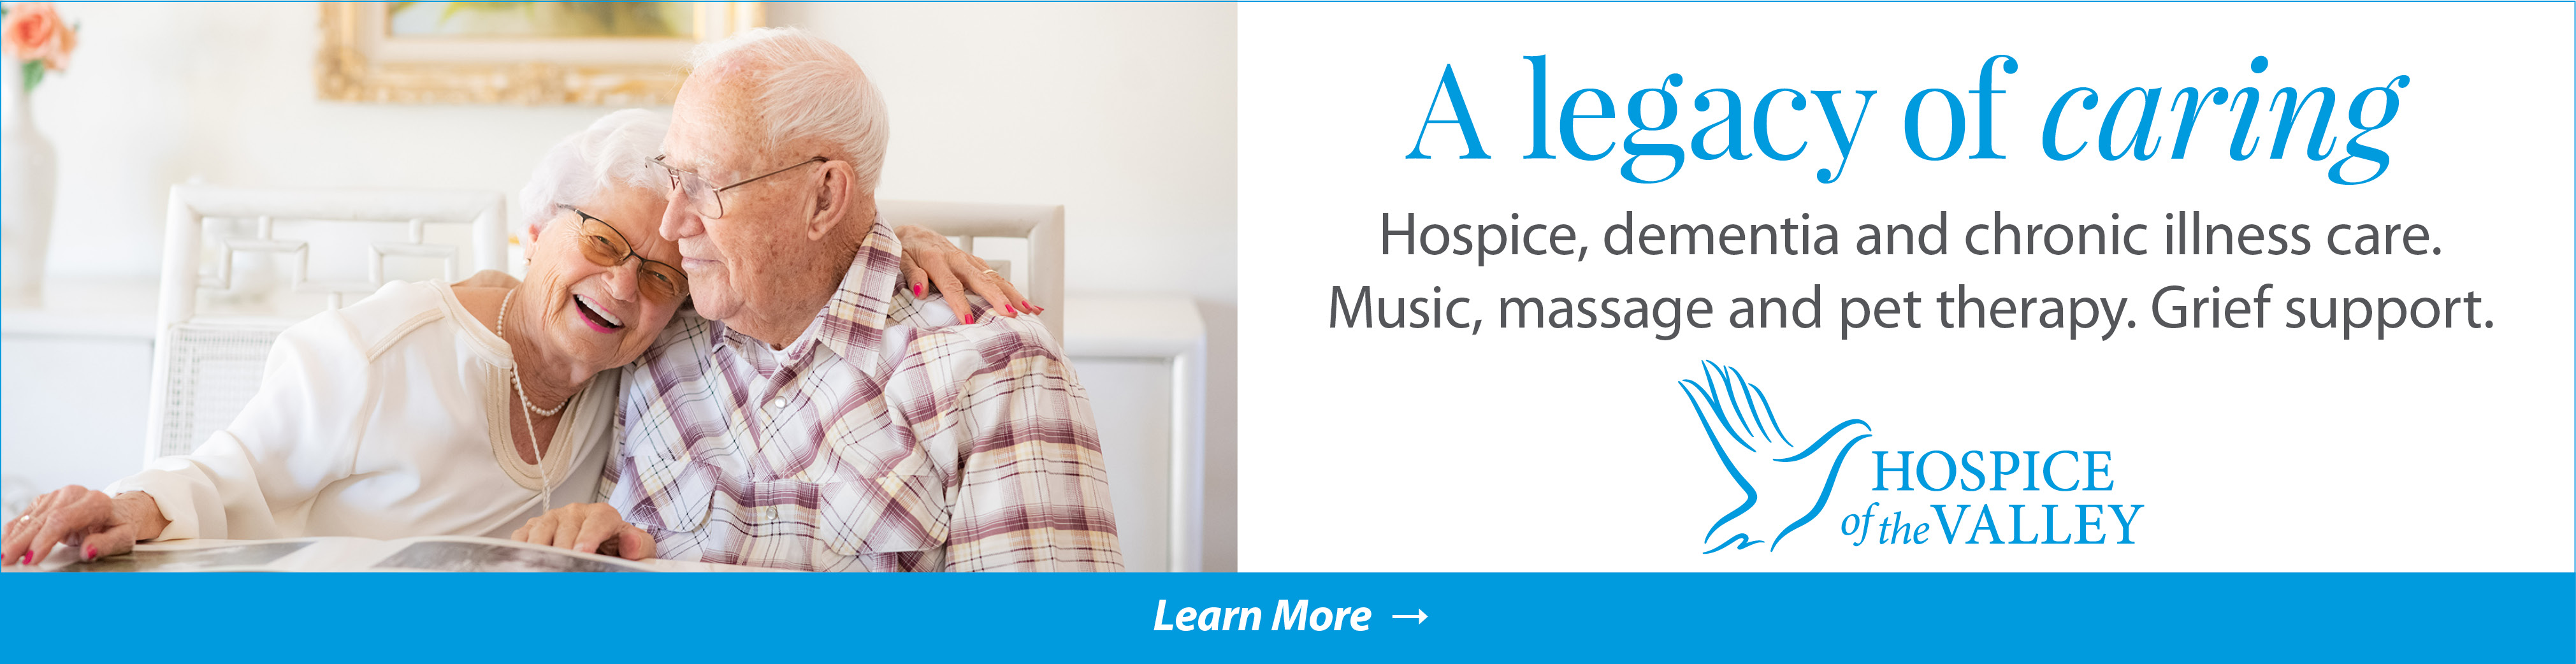 Visit Hospice of the Valley billboard